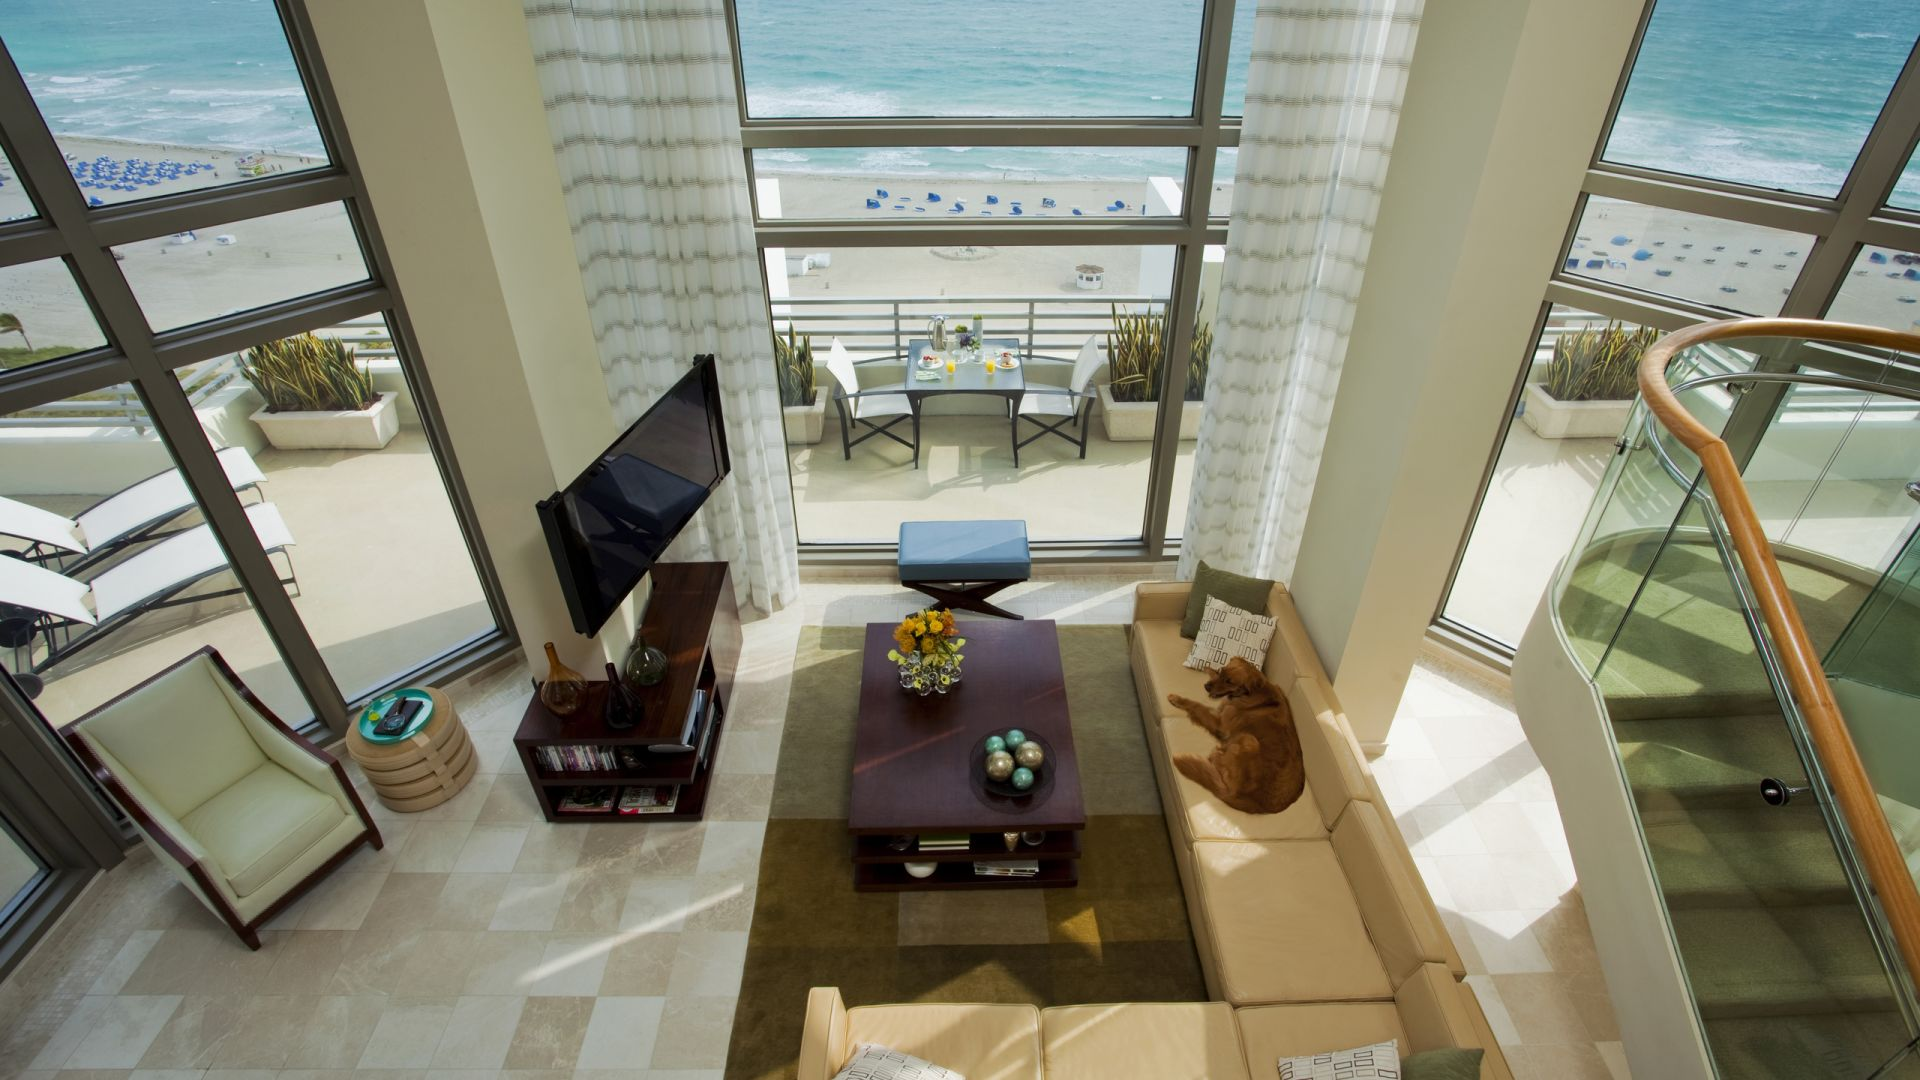 Suite presidencial frente al mar con balcón | Loews Miami Beach Hotel